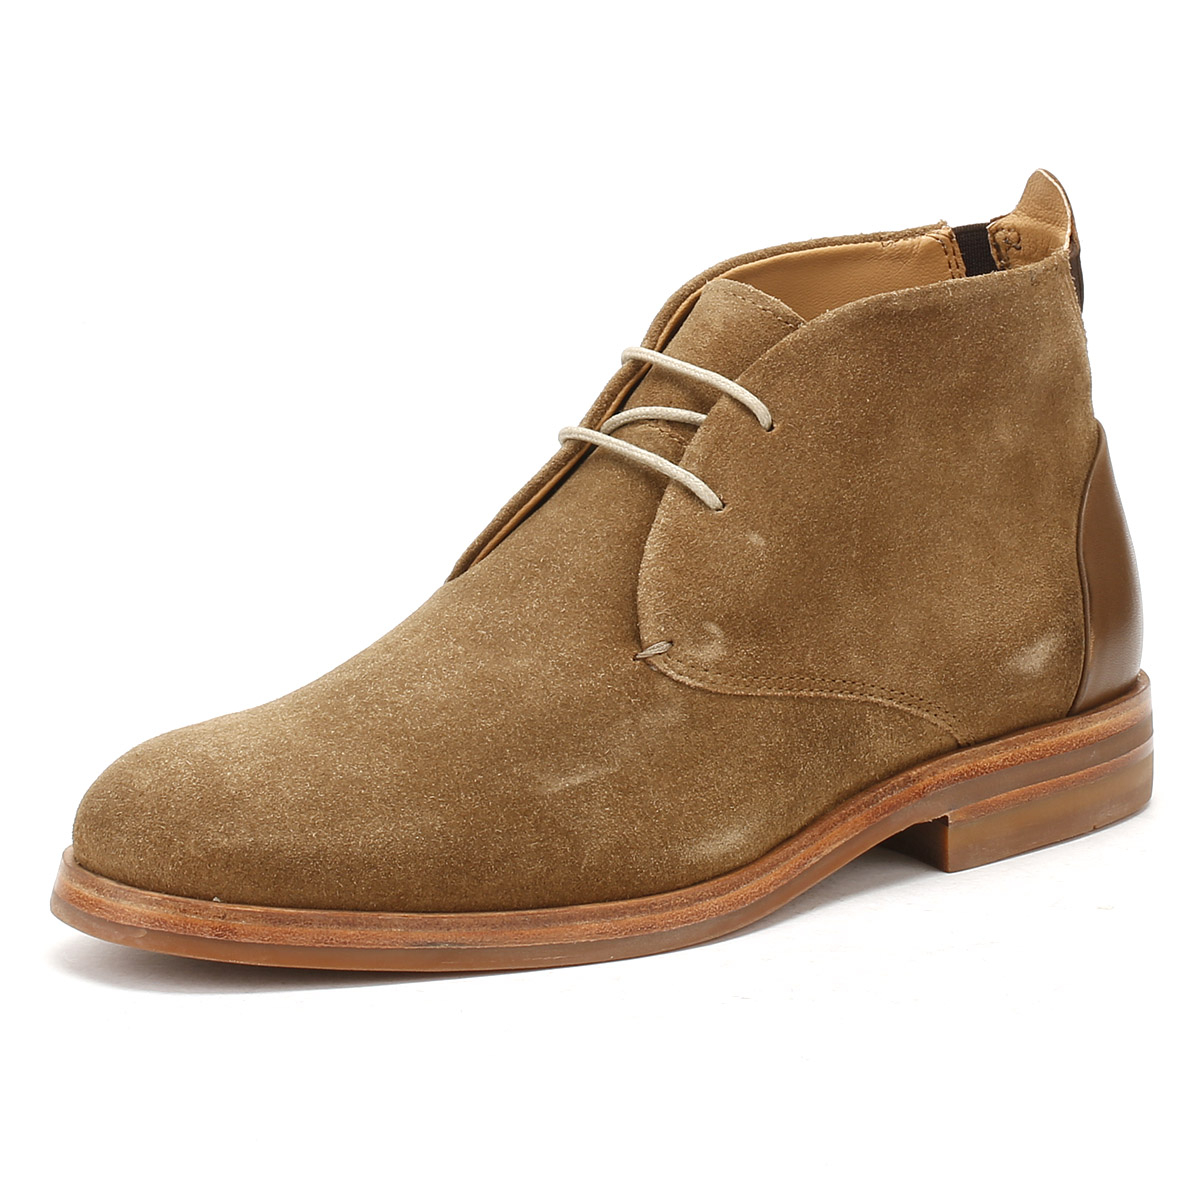 Hudson Mens Tobacco Brown Suede Matteo Desert Boots Lace Up Anlke Shoes